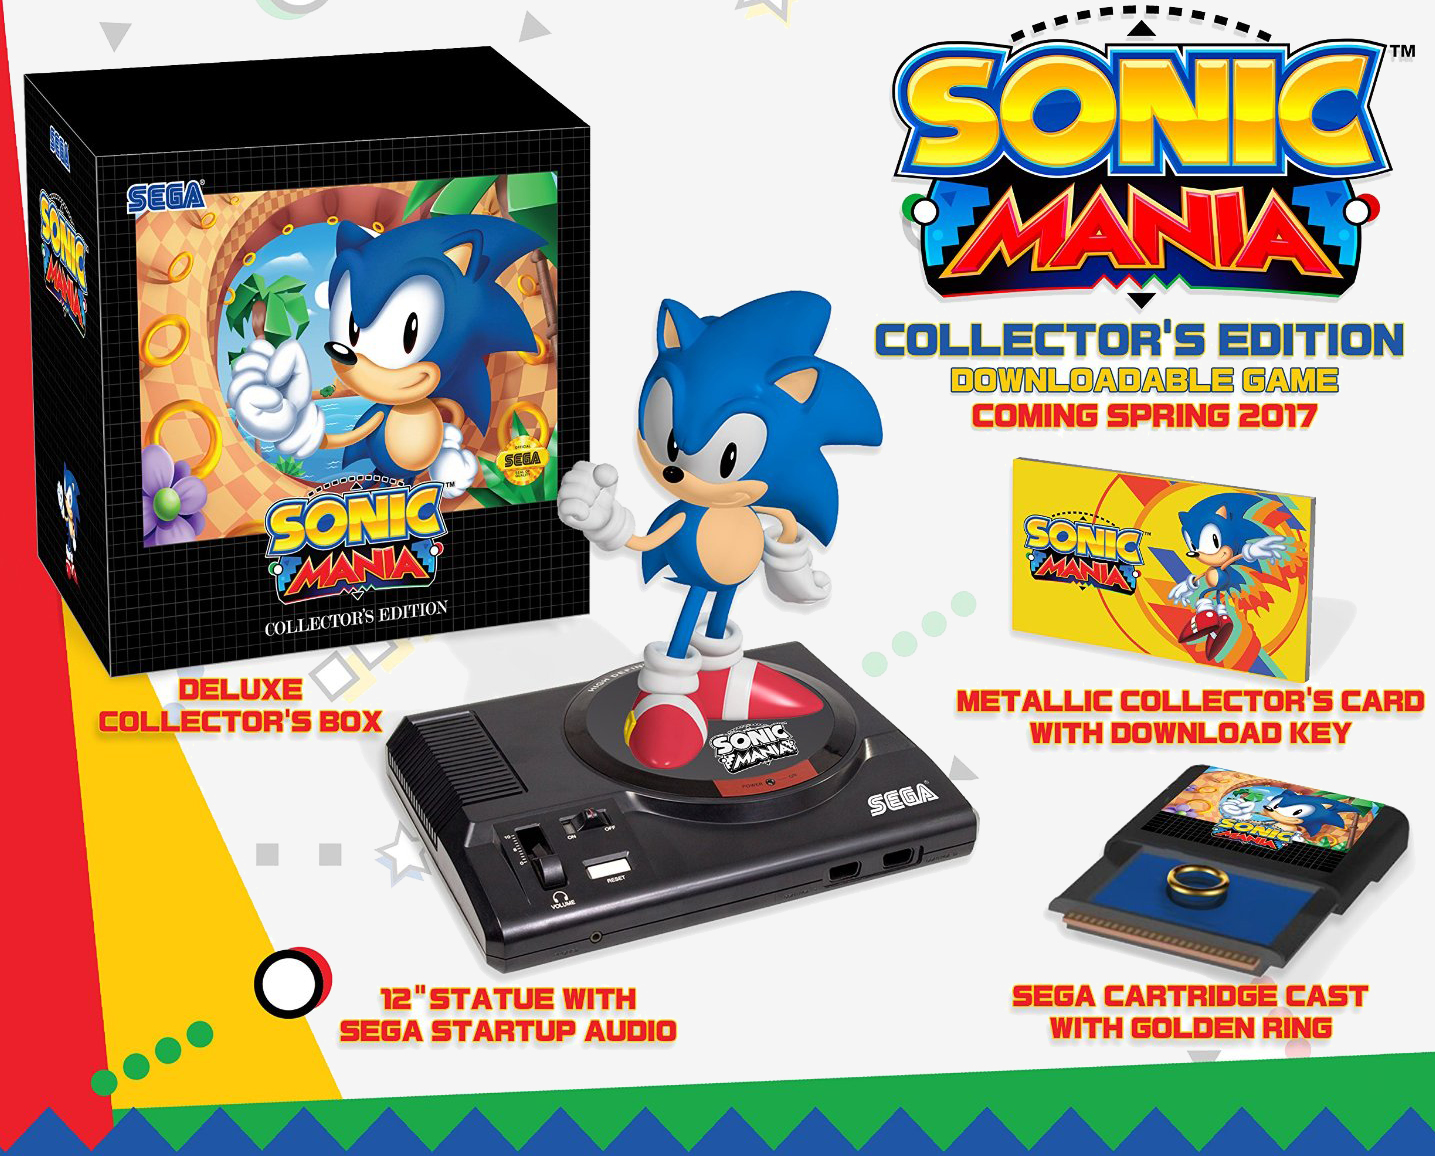 sega, bundle, sonic, pre-order, nostalgia, game streaming, sega genesis, sonic mania, sonic mania collectors edition